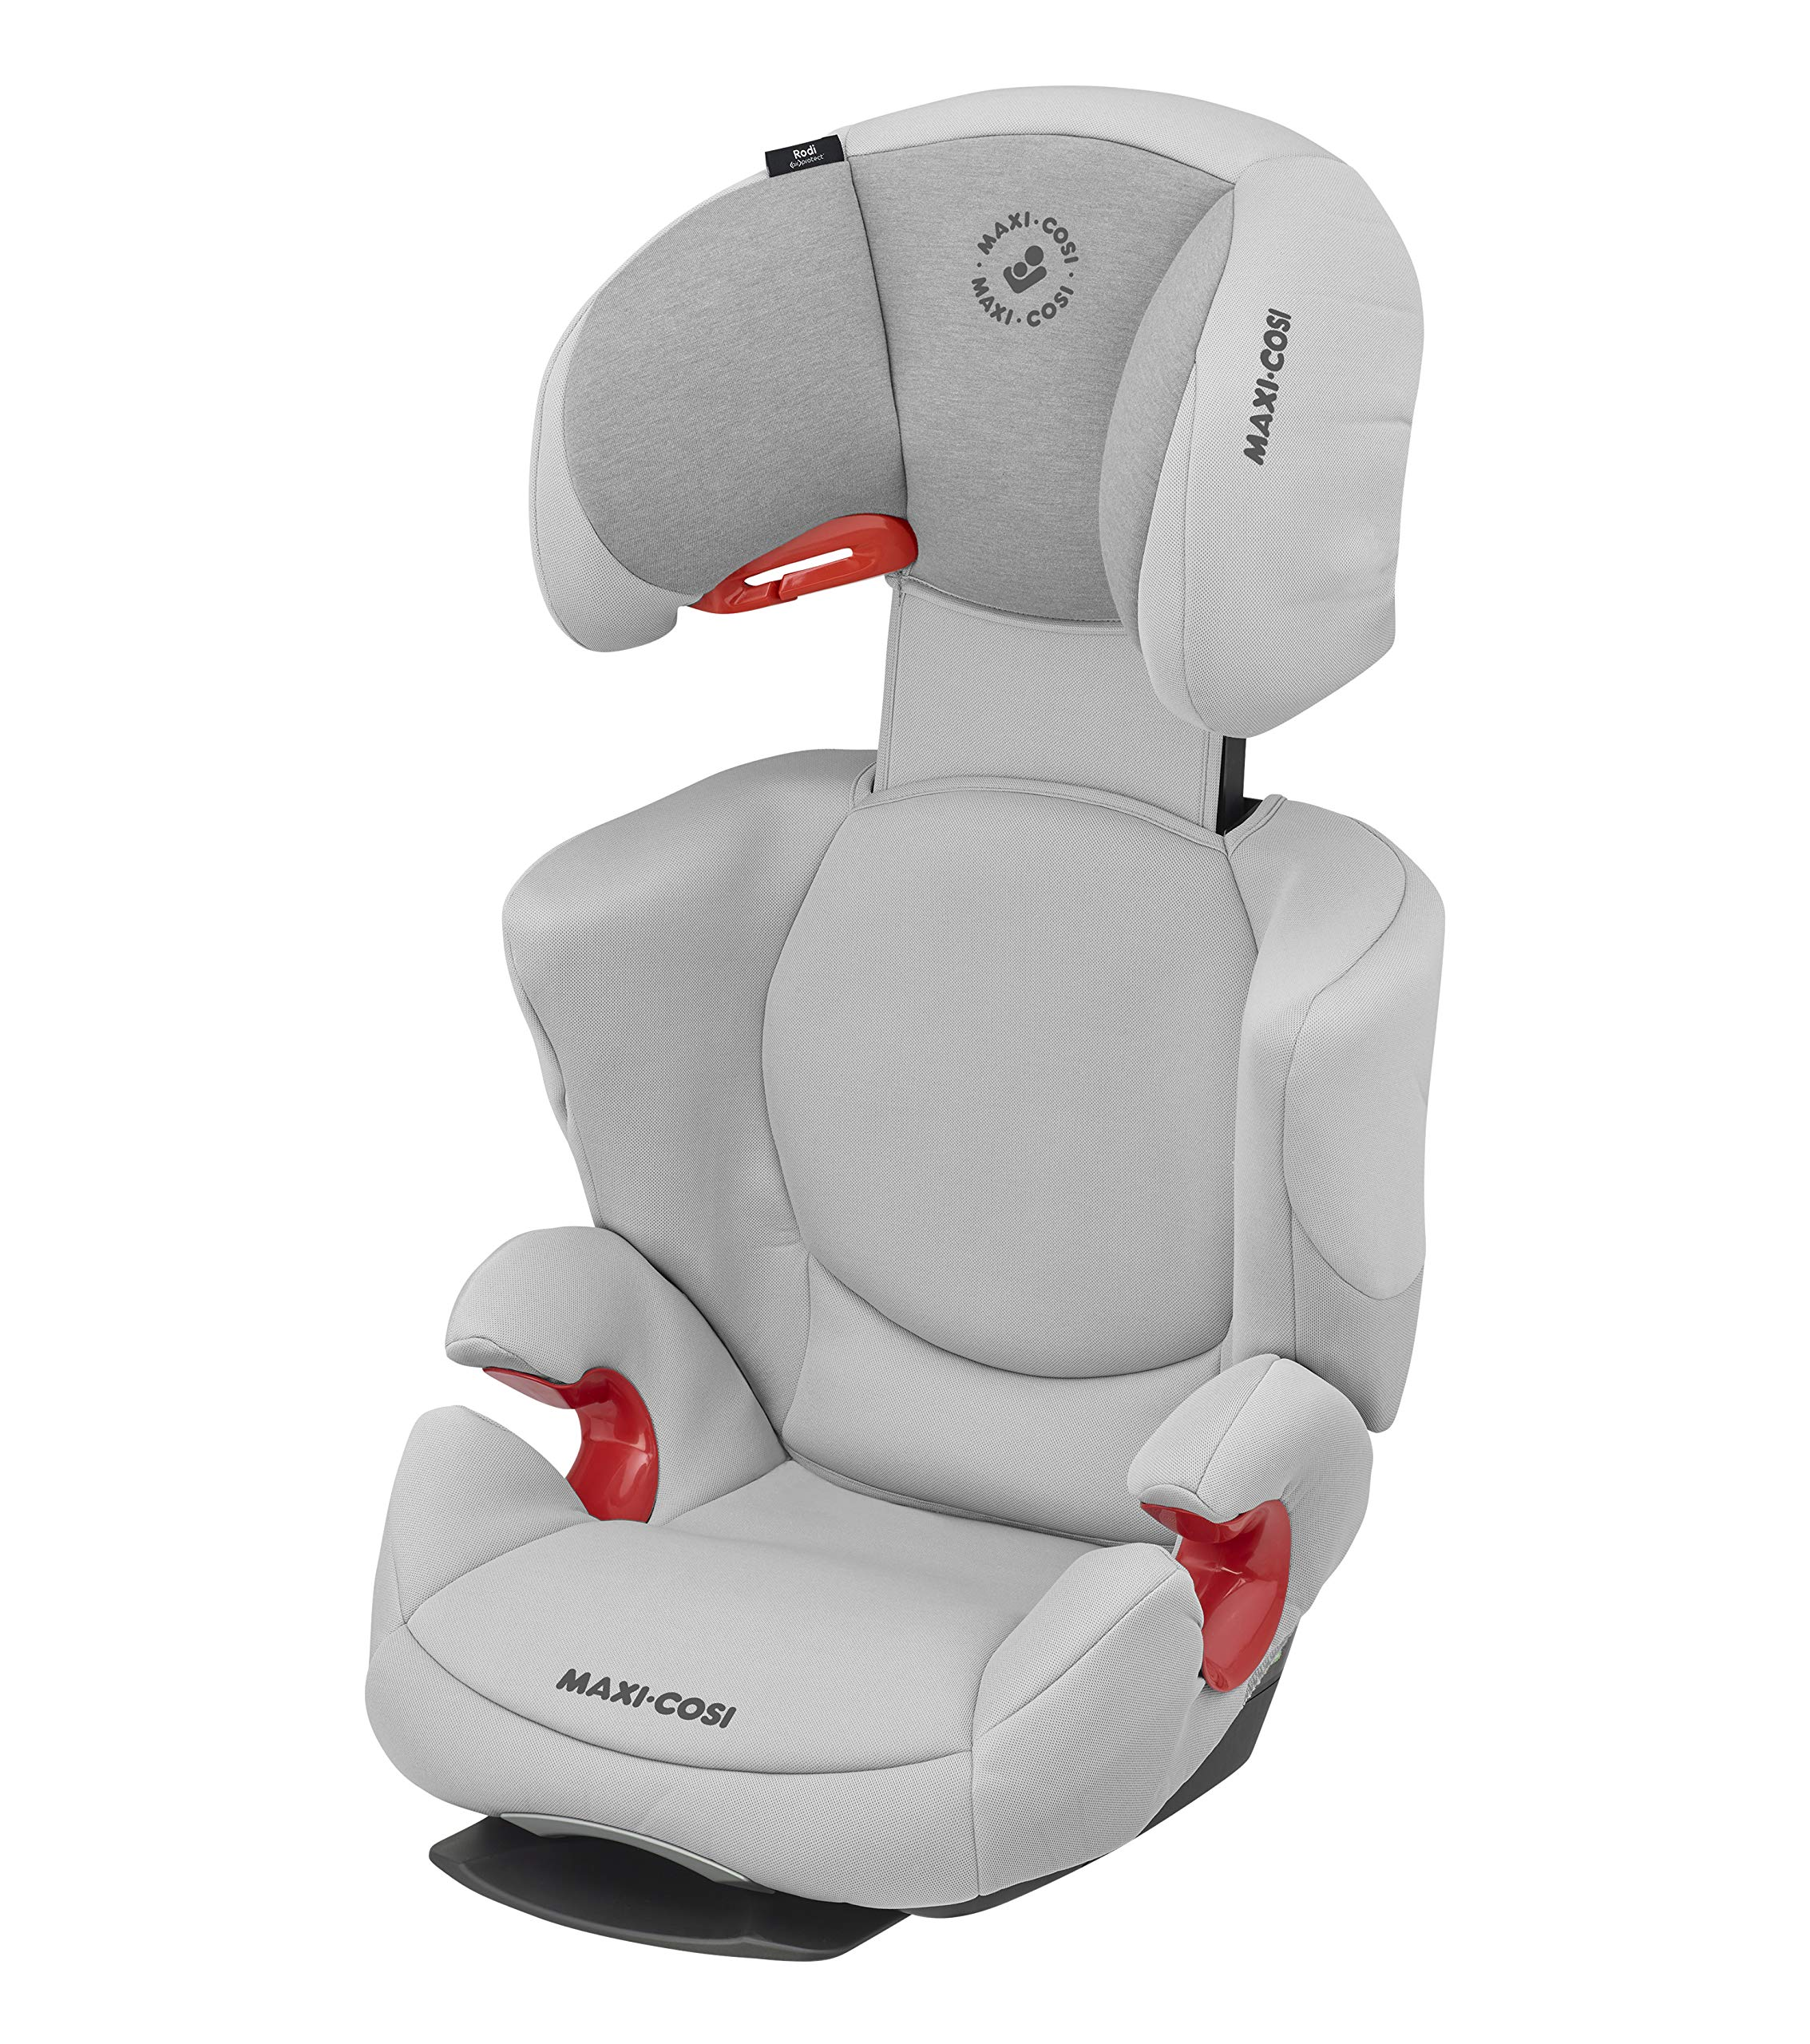 Maxi-Cosi Rodi AirProtect Child Car Seat, Highback Booster, Authentic Grey, 4.913 kg Maxi-Cosi Child car seat, suitable from 3.5 to 12 years (15 - 36 kg) Easily install this safe car seat with a 3-point seat belt and attach the anchorage point in the head rest through your cars head rest Patented air protect technology in headrest reduces the risk of head and neck injuries up to 20% 1